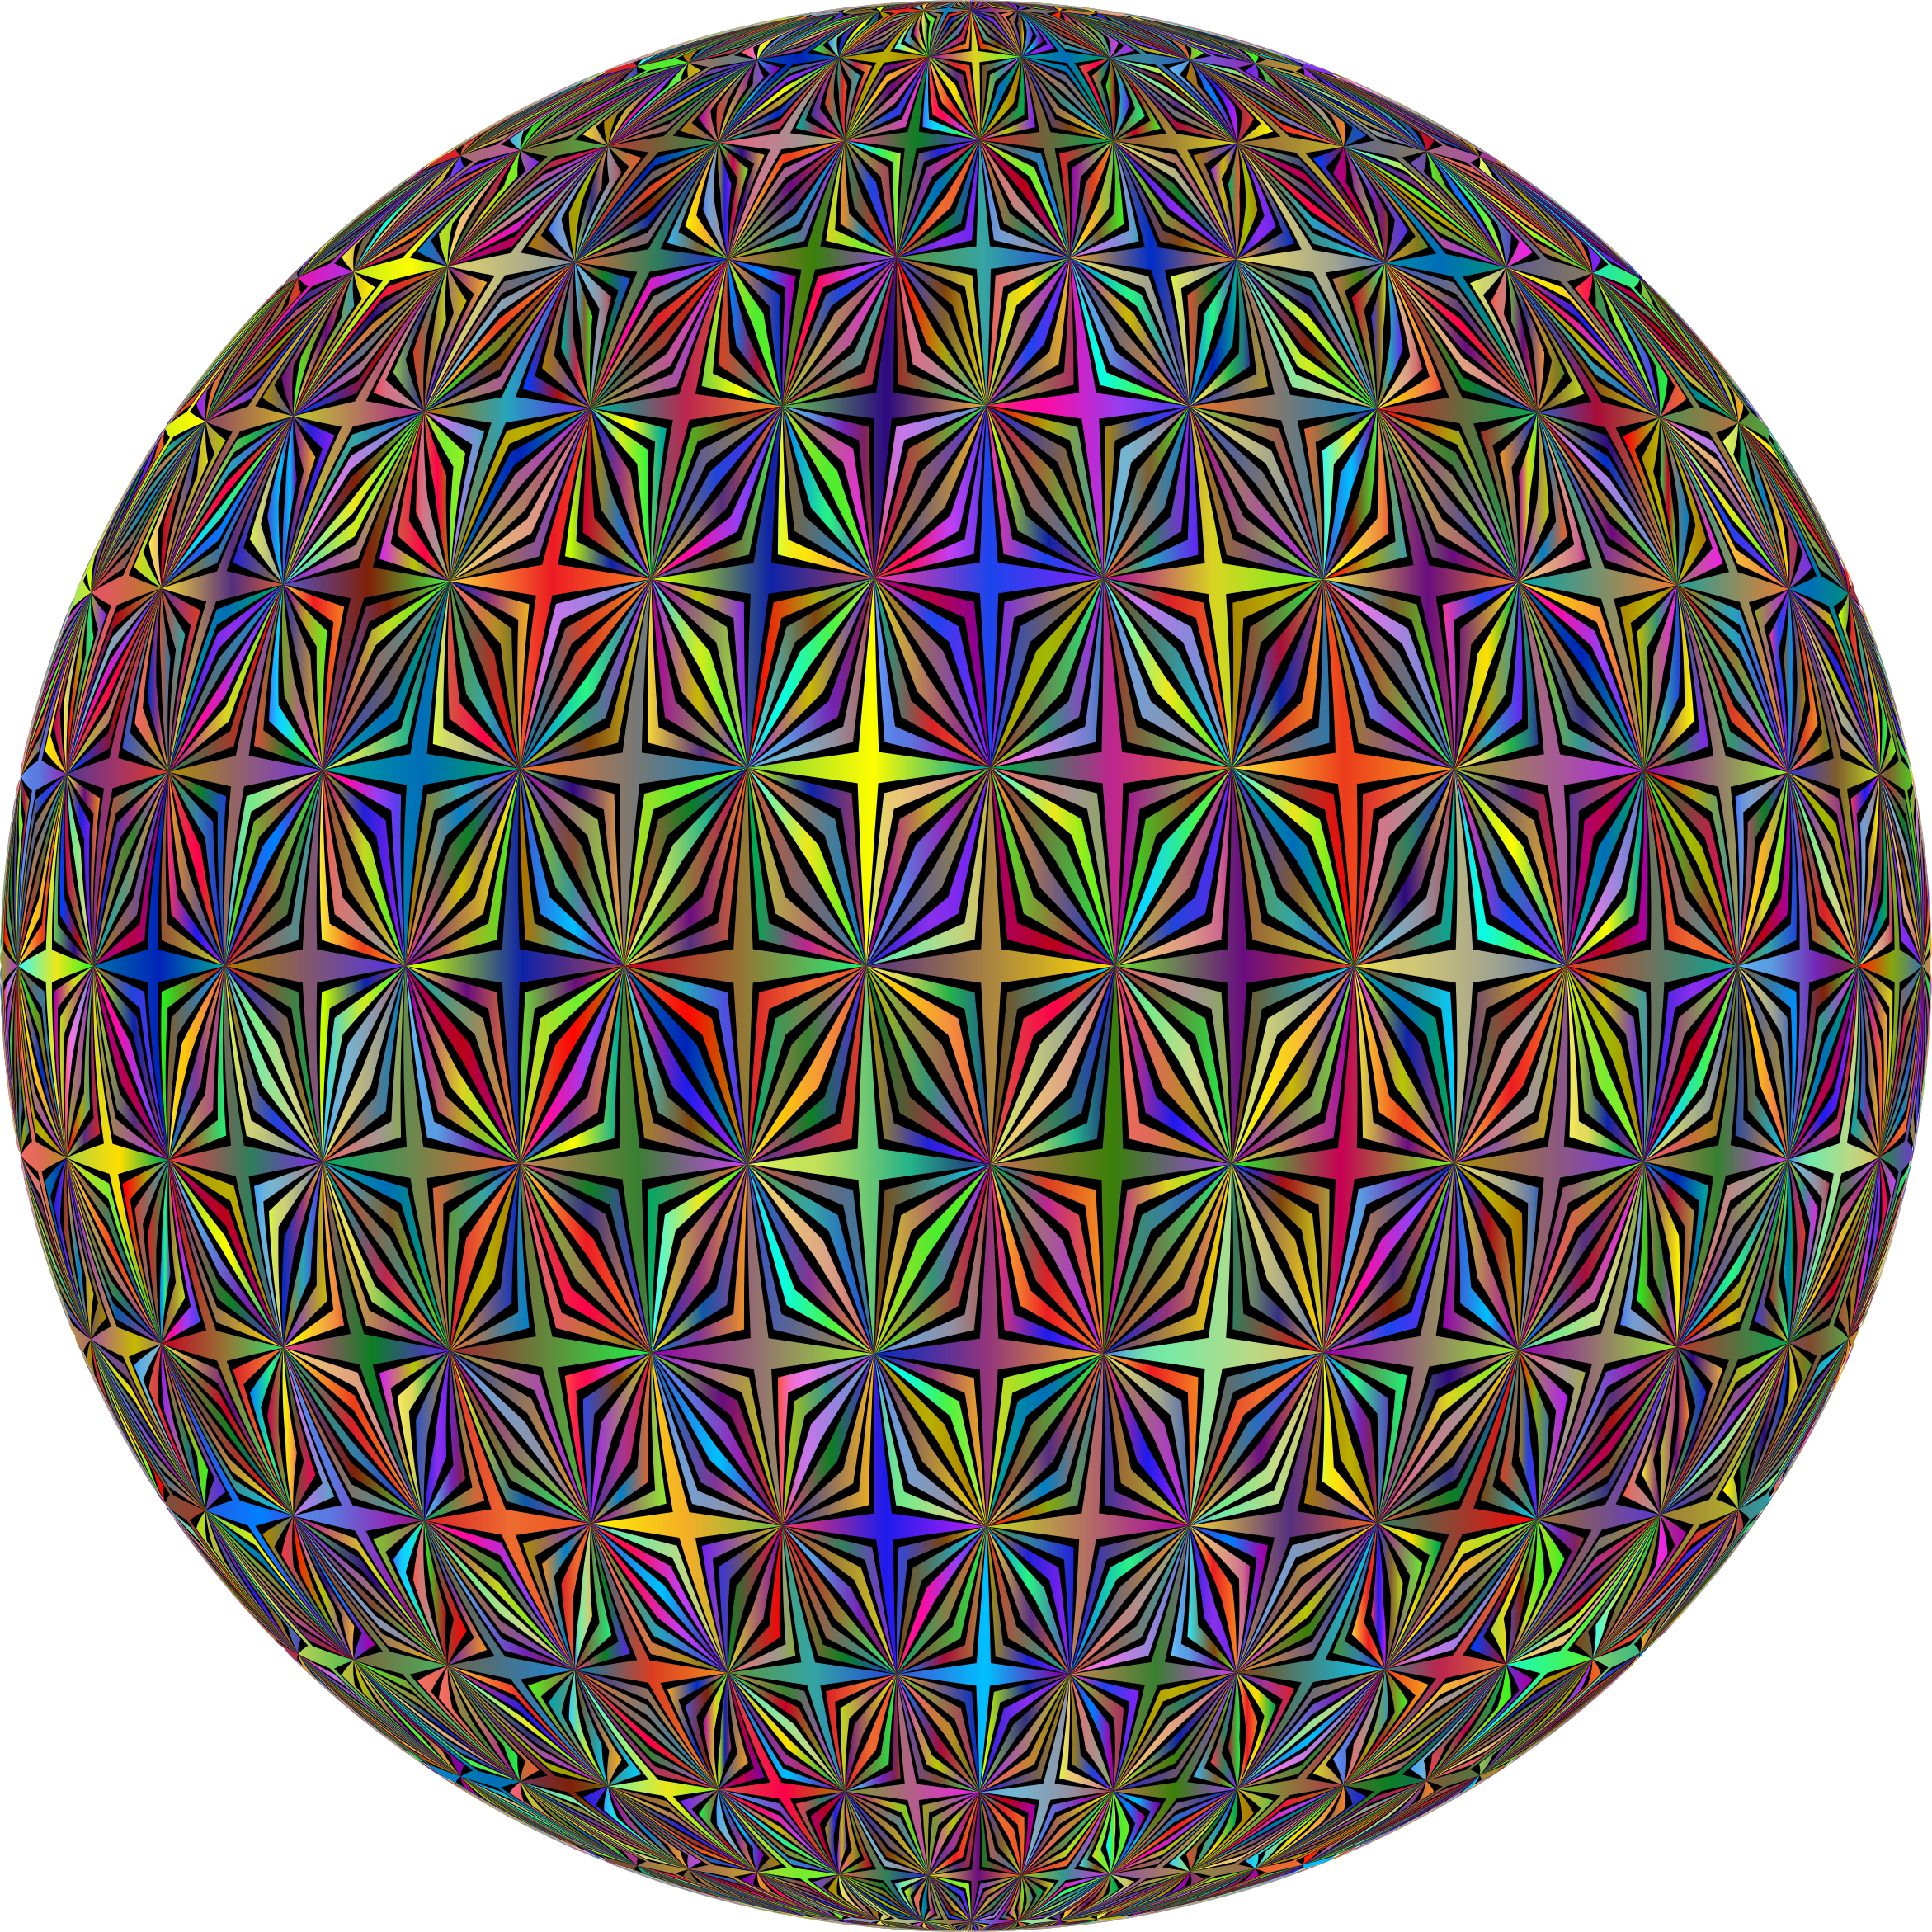 Abstract Hollow Diamonds Pattern Type II Polyprismatic Orb by GDJ